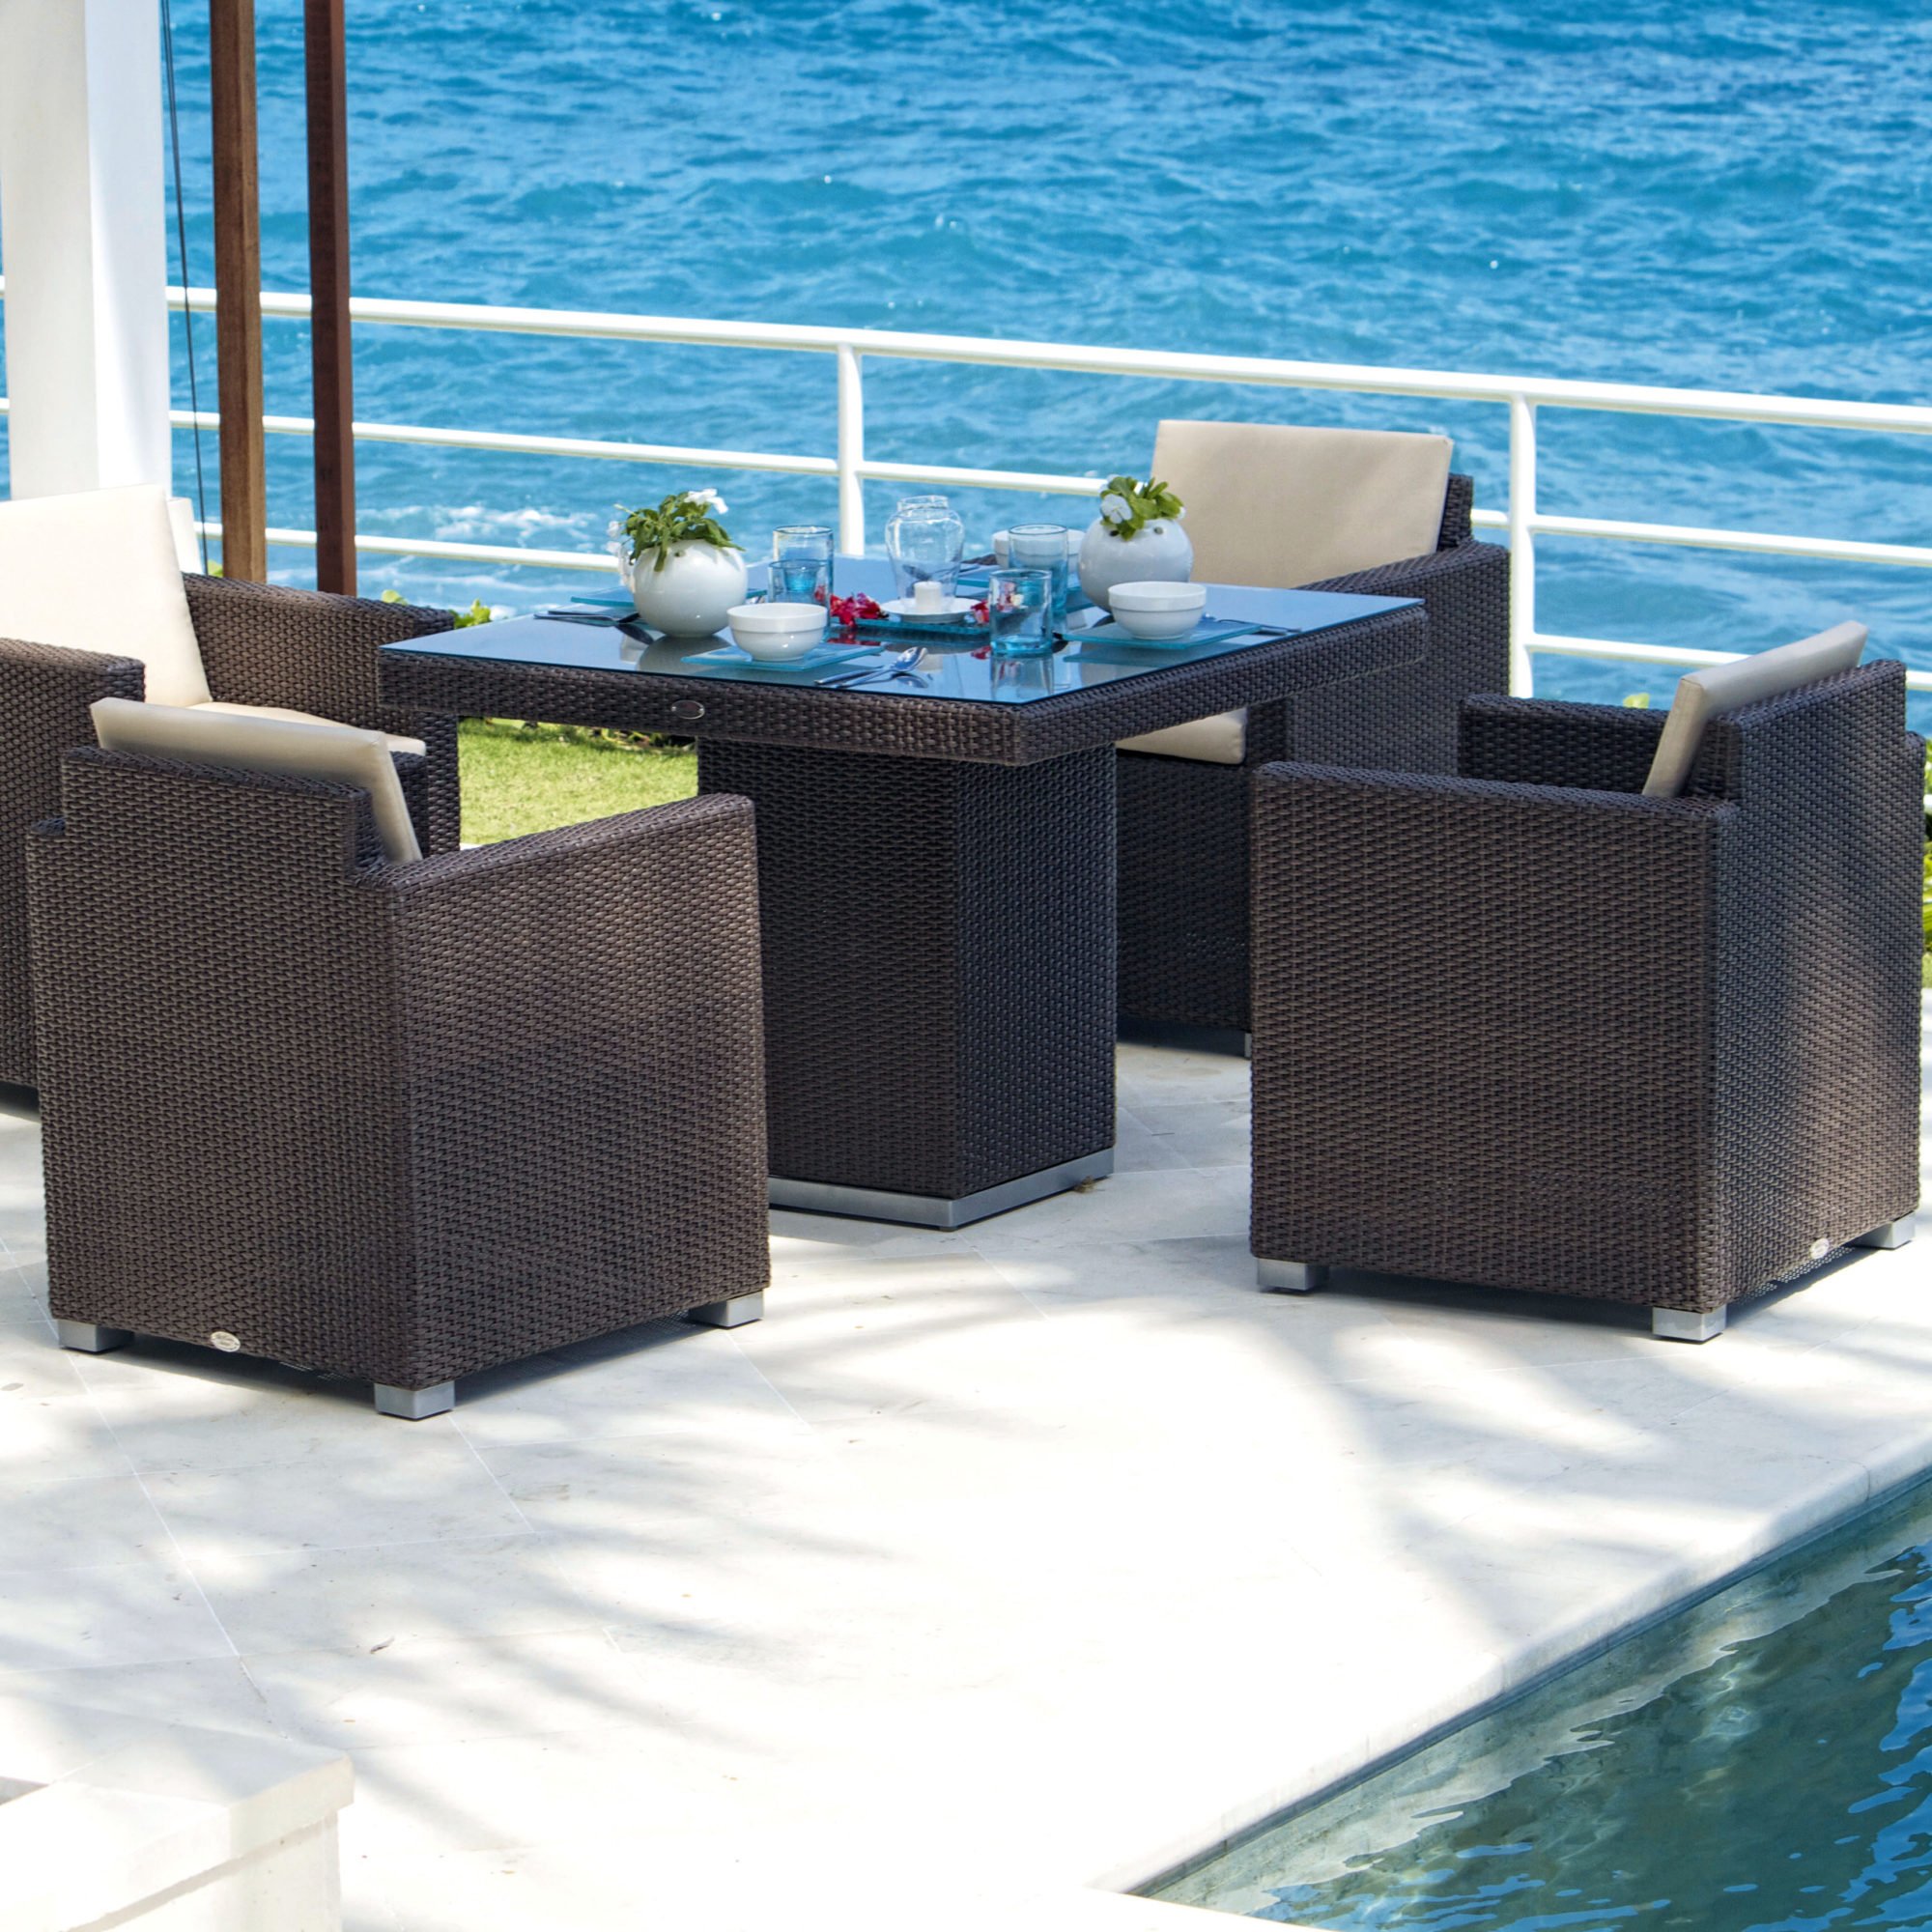 Skyline pacific dining collection couture outdoor for Pacific home collection